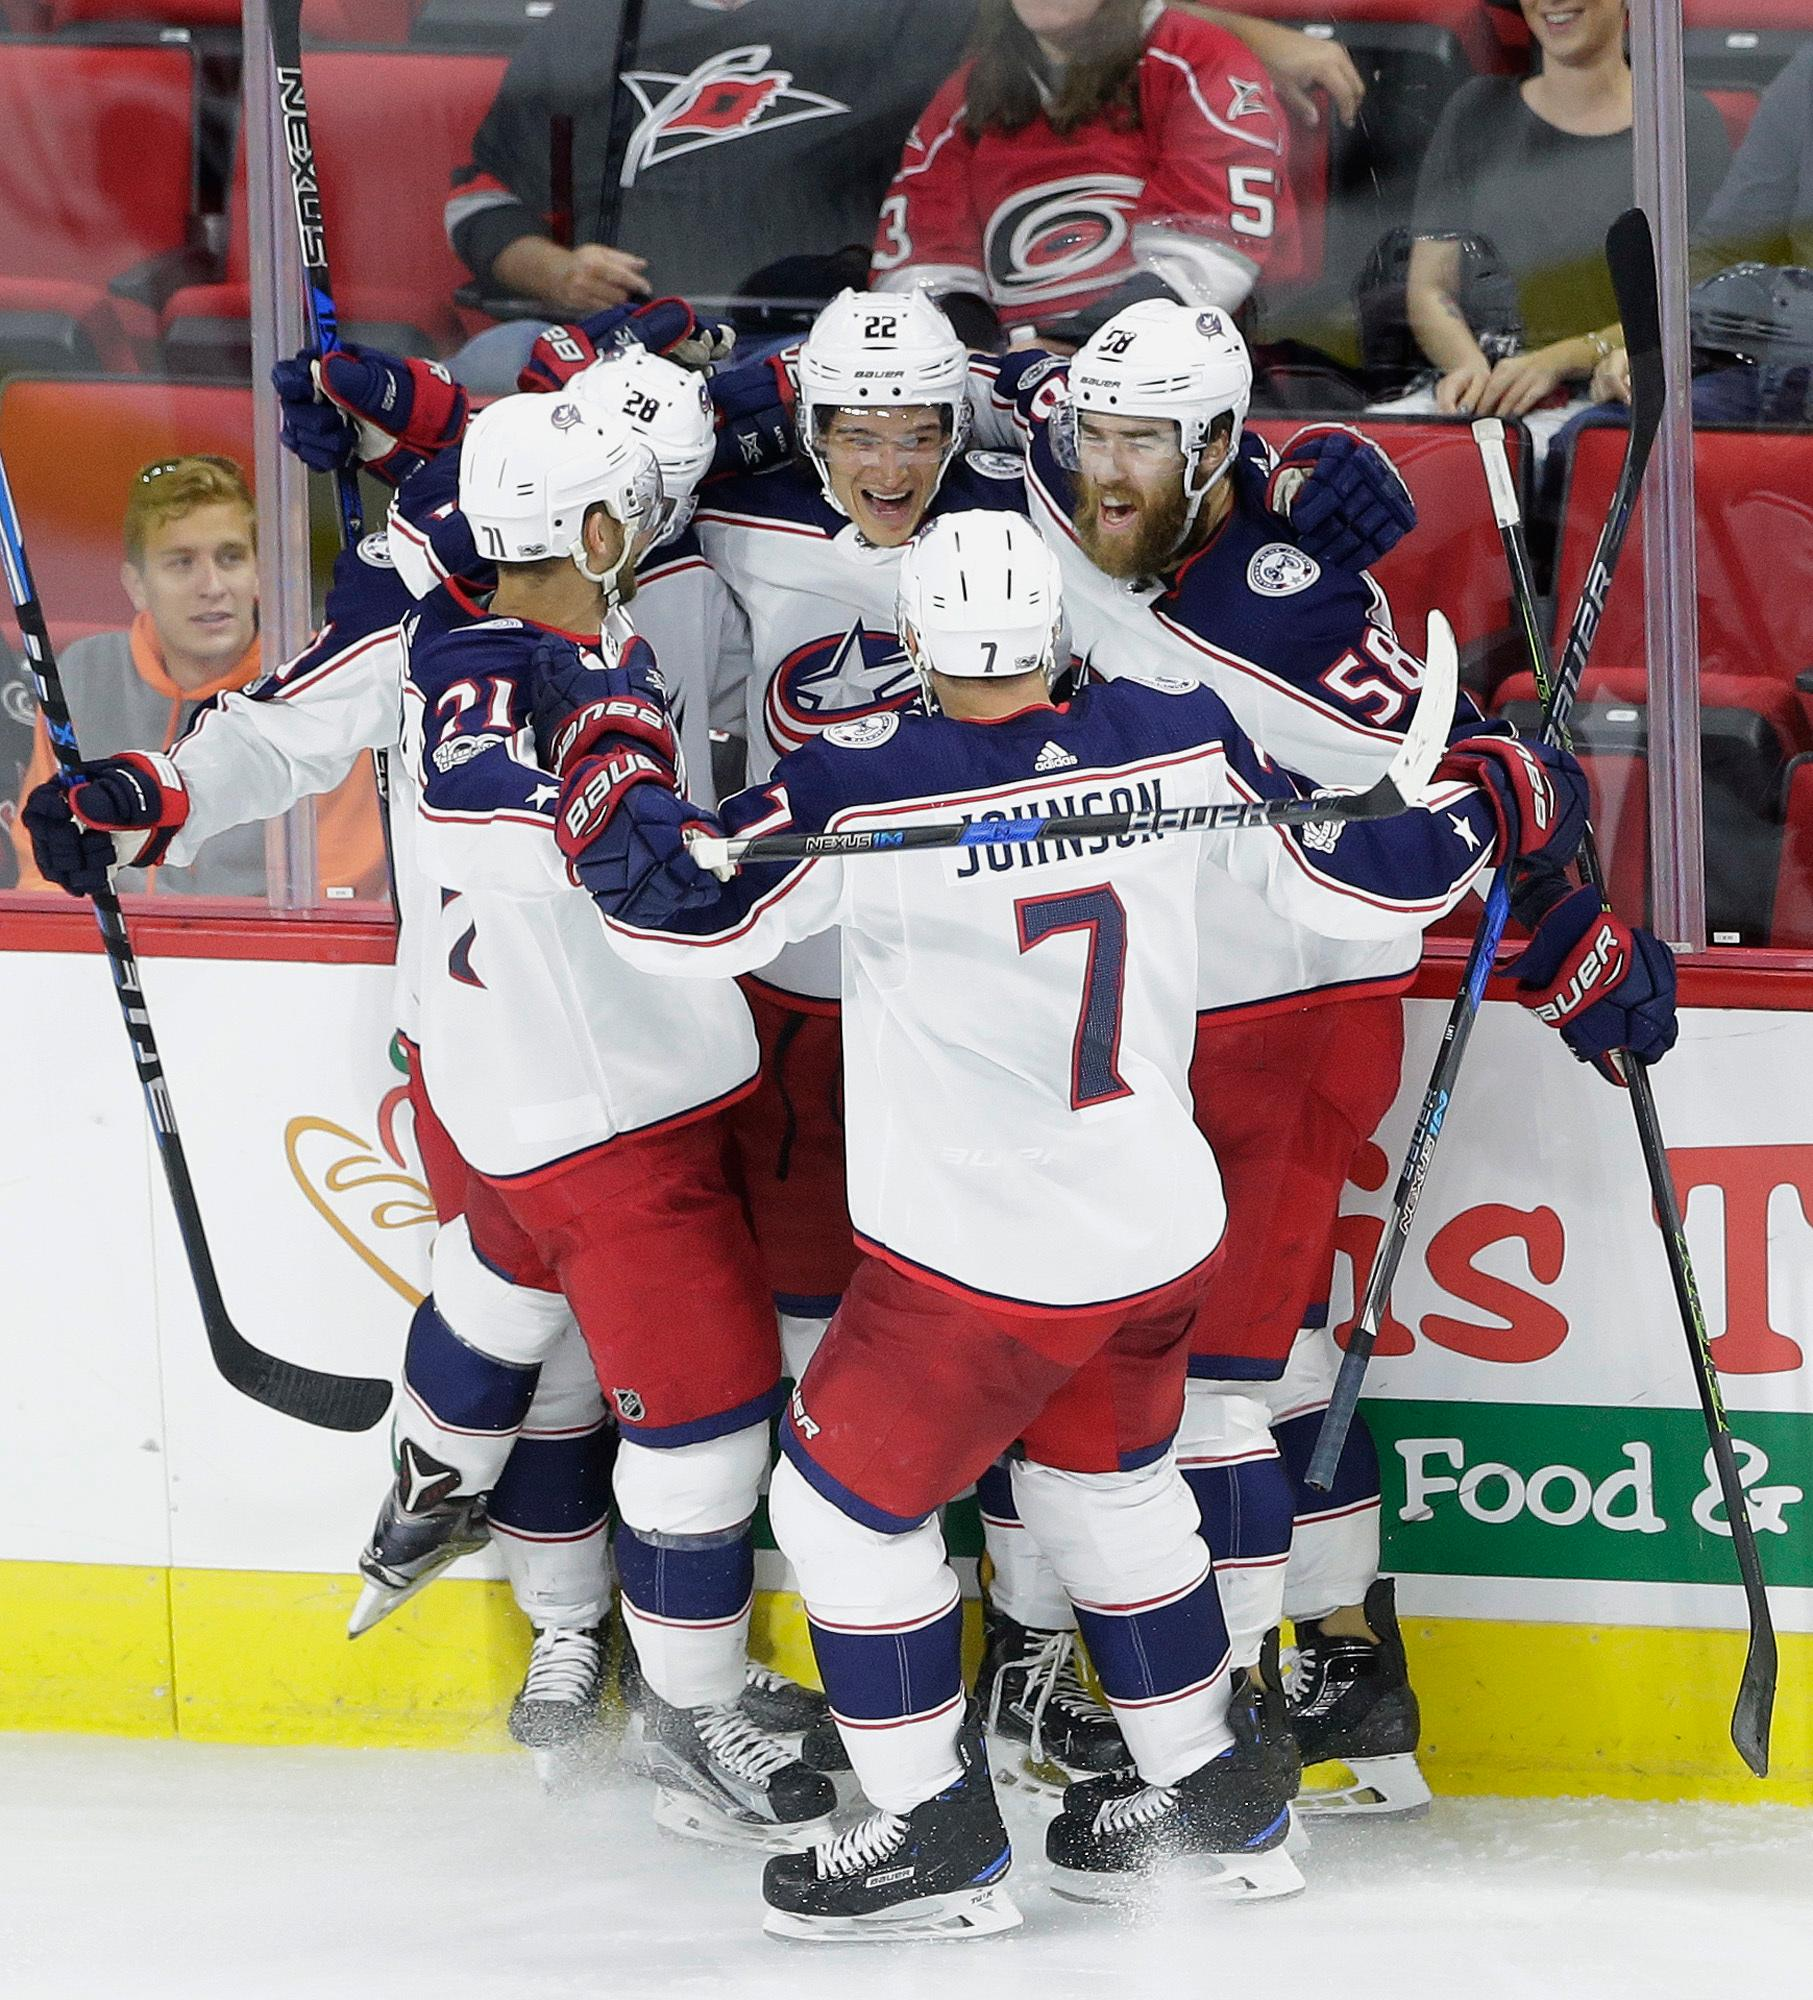 Columbus Blue Jackets' Sonny Milano (22) is congratulated by Jack Johnson (7), David Savard (58), Oliver Bjorkstrand (28), of Denmark, and Nick Foligno (71) following Milano's goal against the Carolina Hurricanes during the third period of an NHL hockey game in Raleigh, N.C., Tuesday, Oct. 10, 2017. Columbus won 2-1 in overtime. (AP Photo/Gerry Broome)